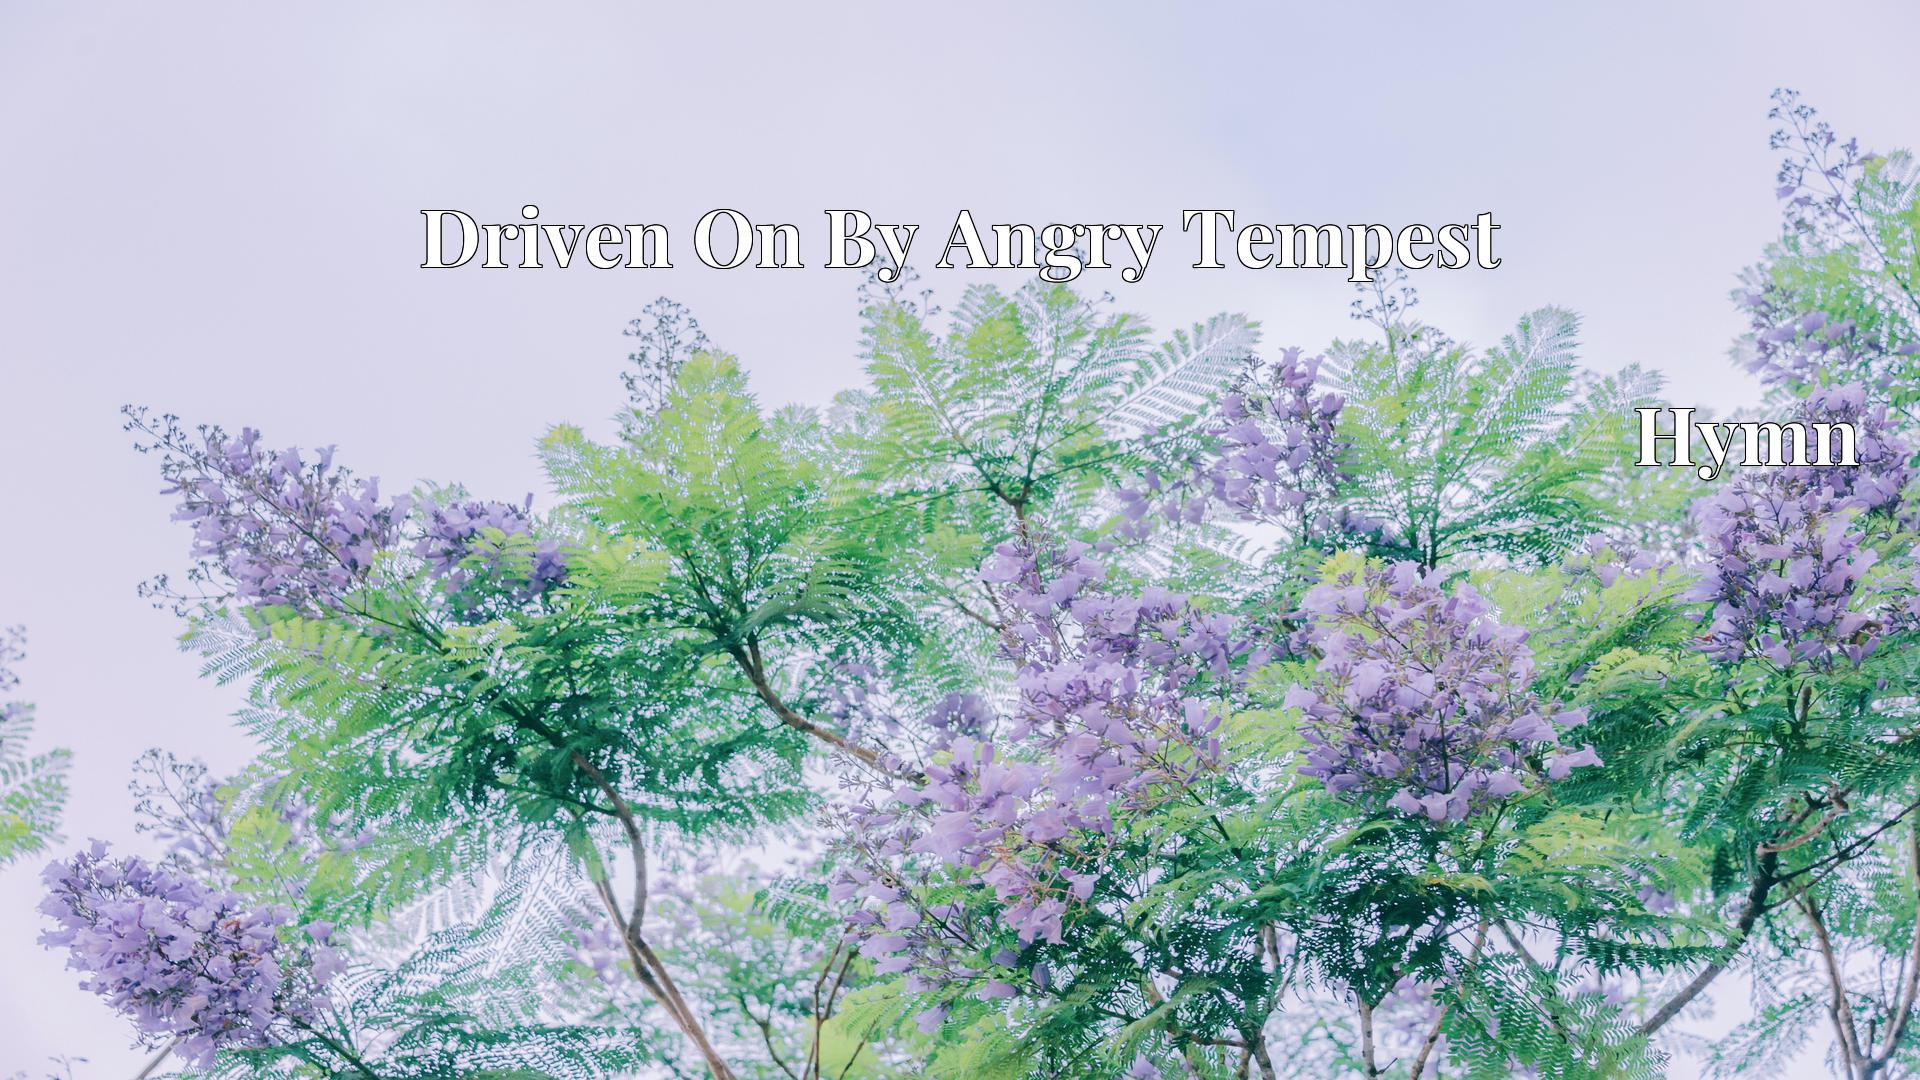 Driven On By Angry Tempest - Hymn